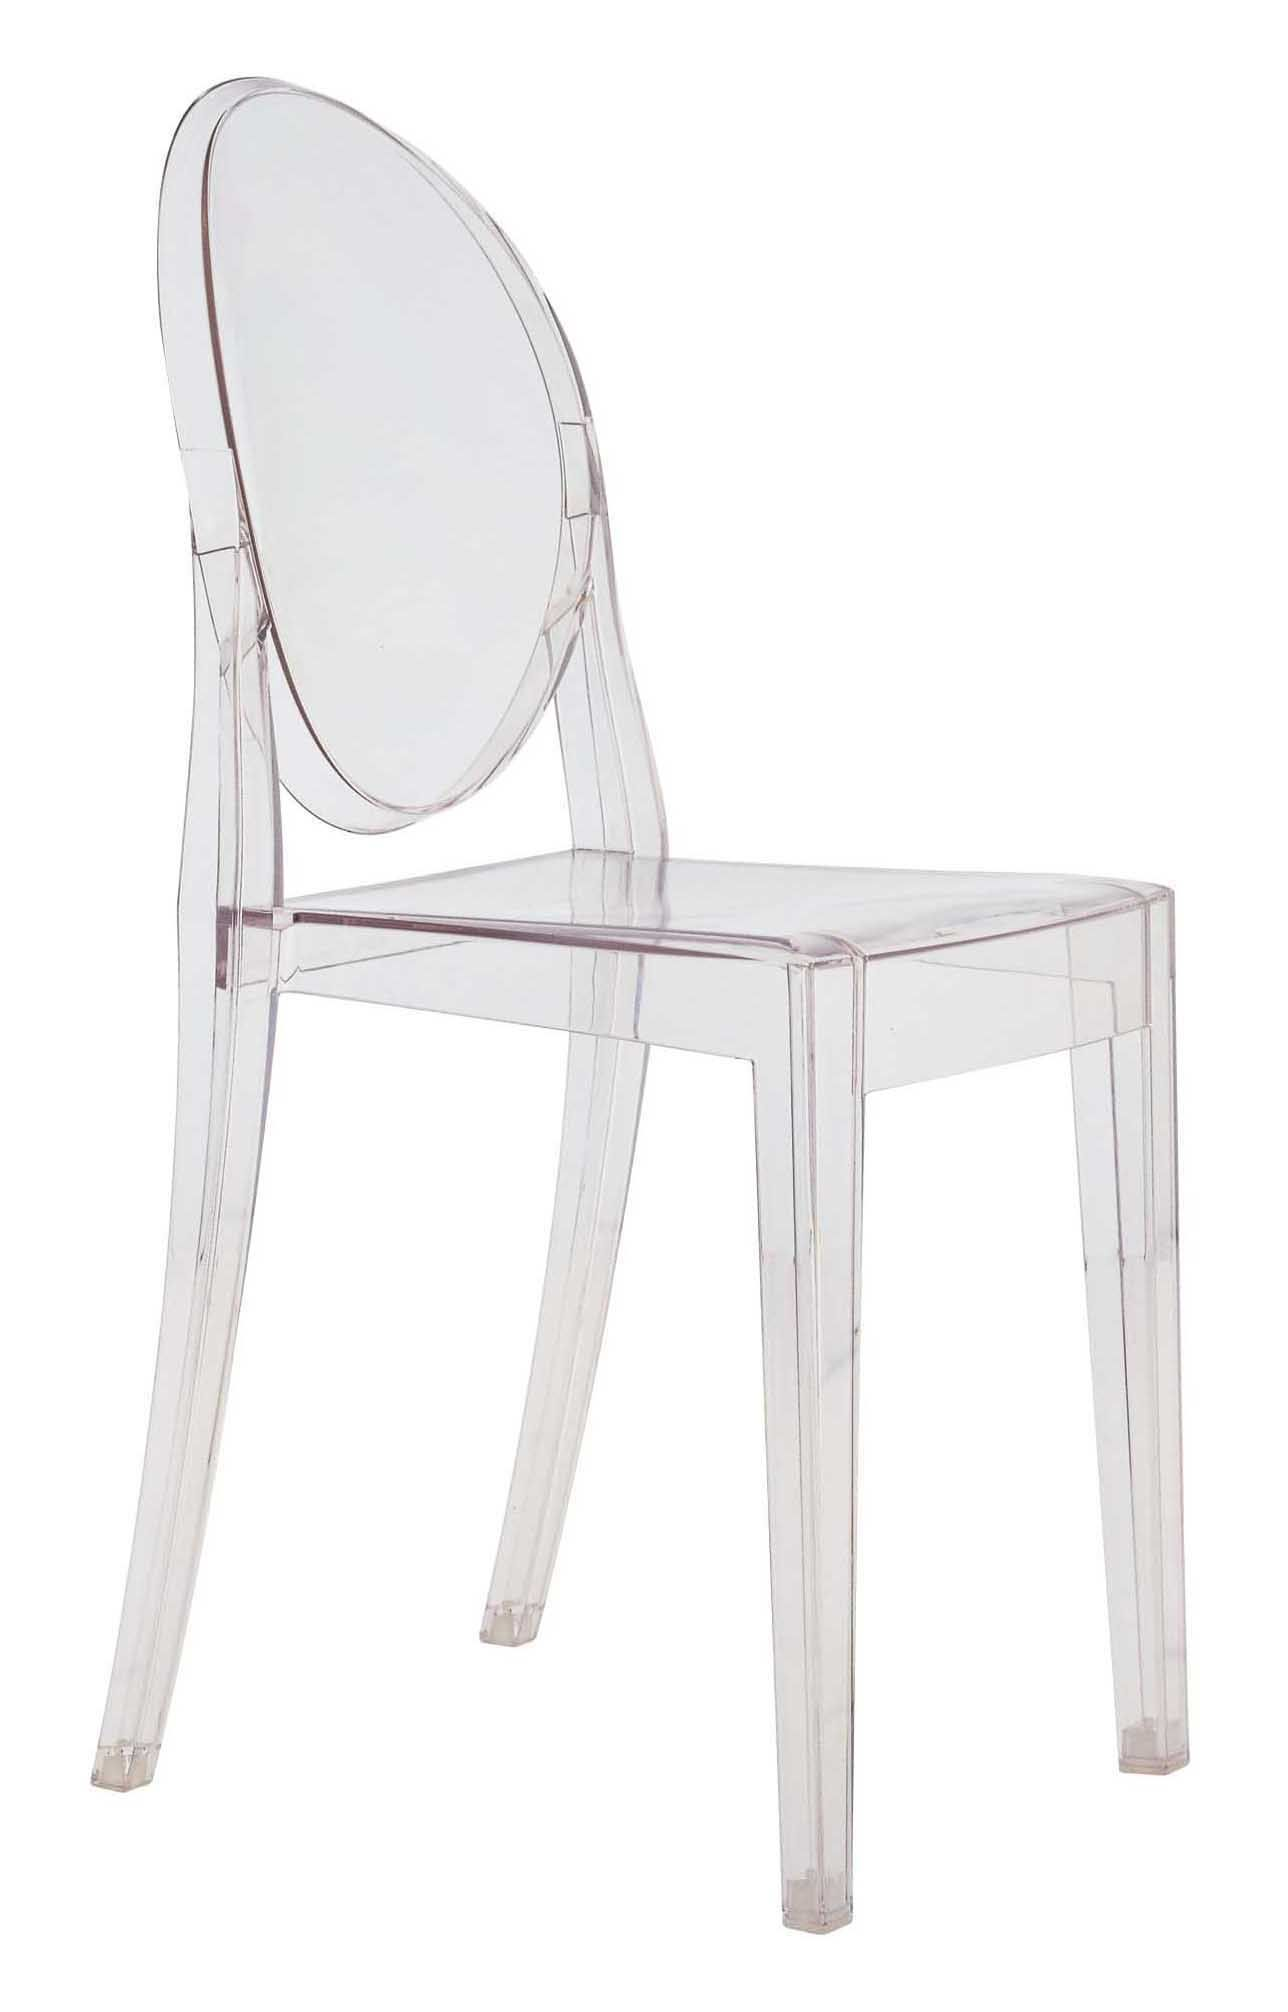 Fauteuil Ghost Chaise Empilable Victoria Ghost Transparente Polycarbonate Kartell